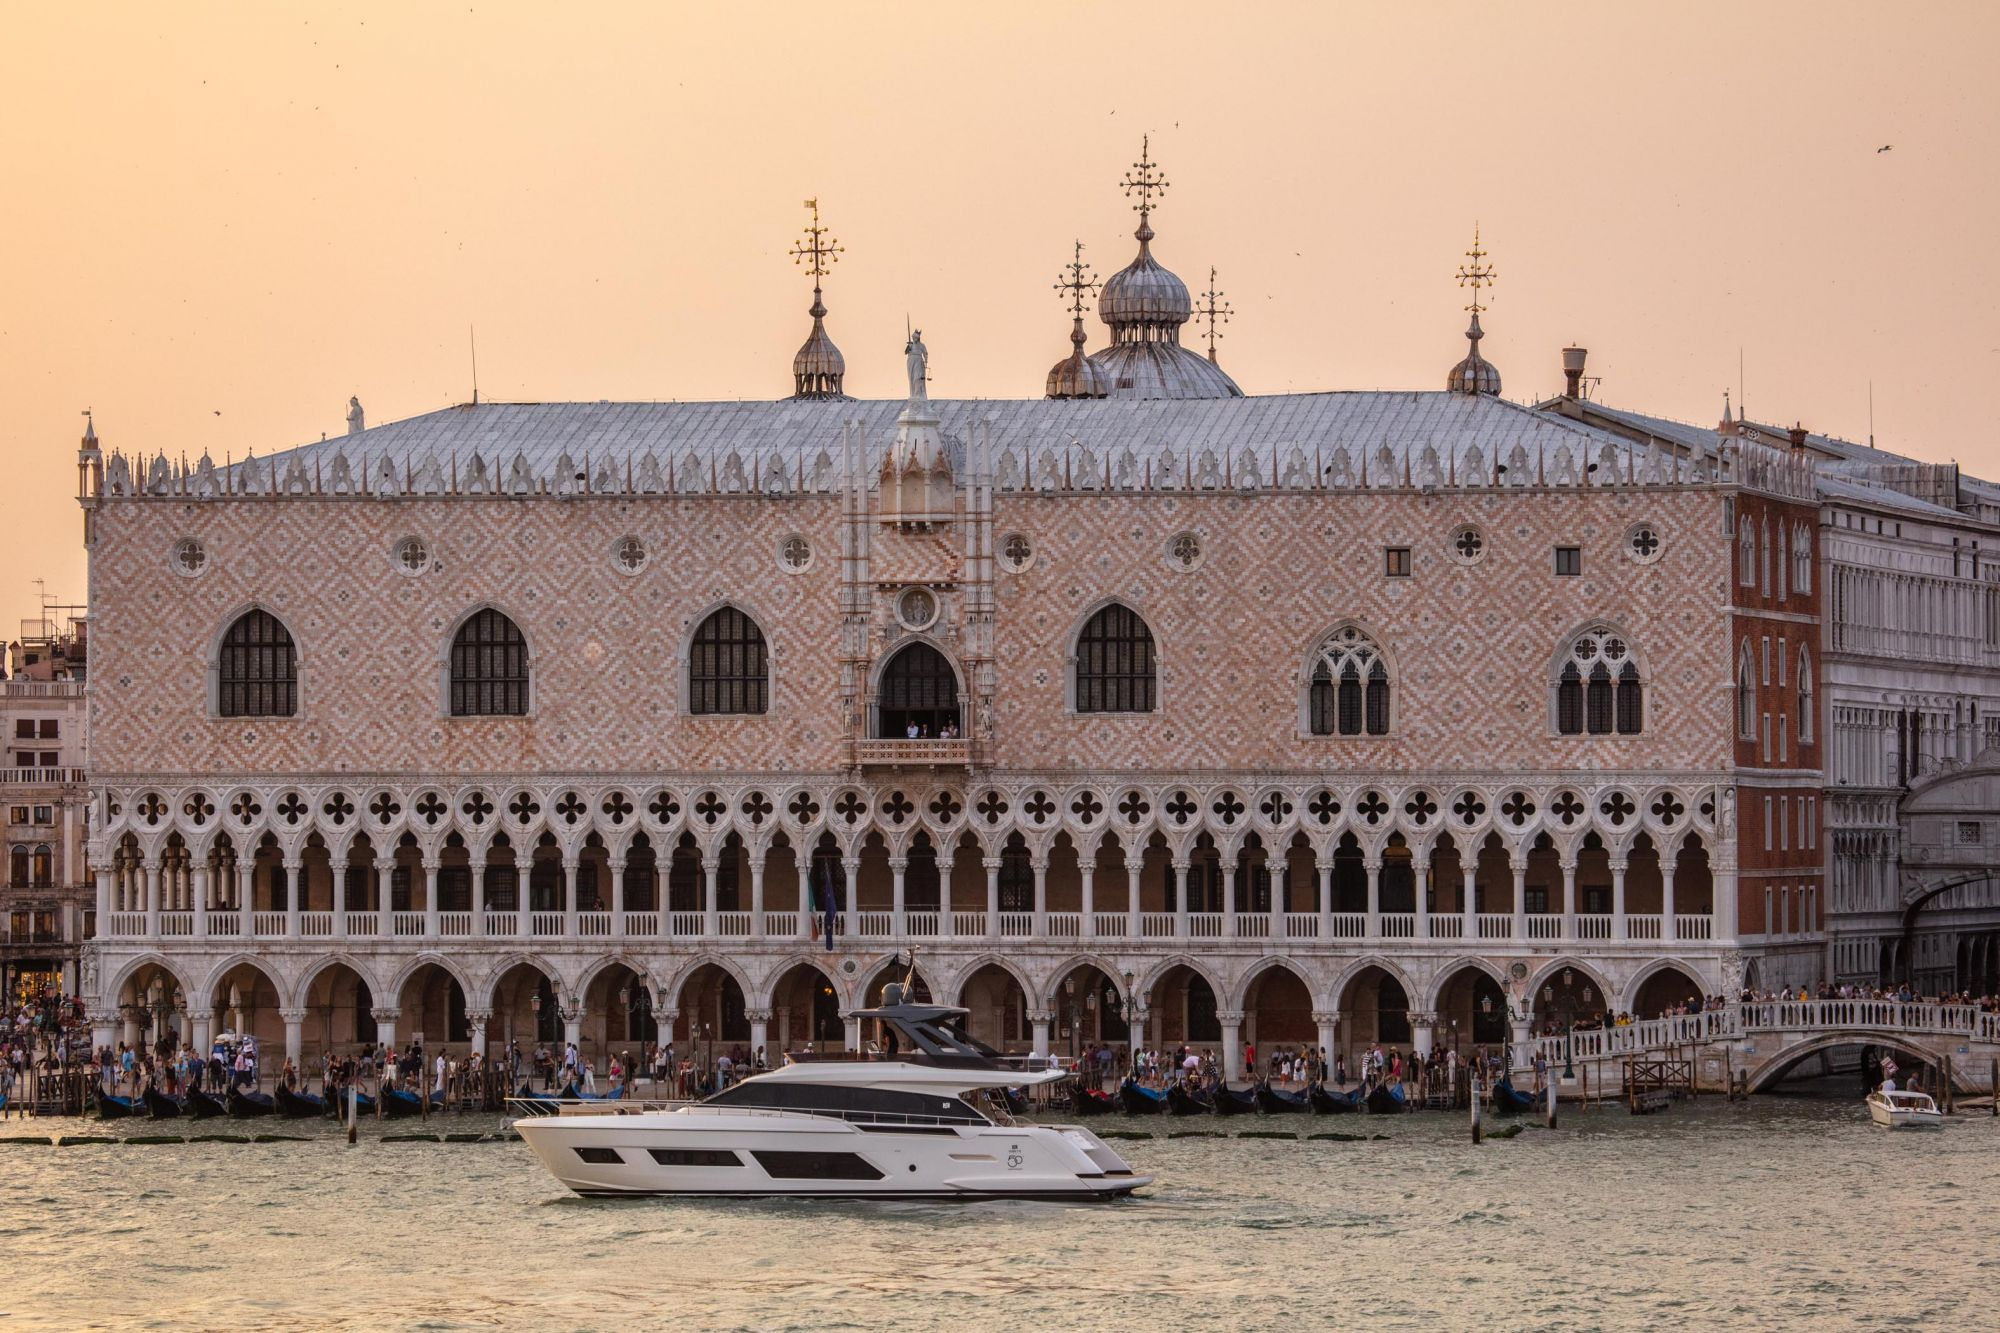 Ferretti Yachts 670 in front of the Palazzo Ducale